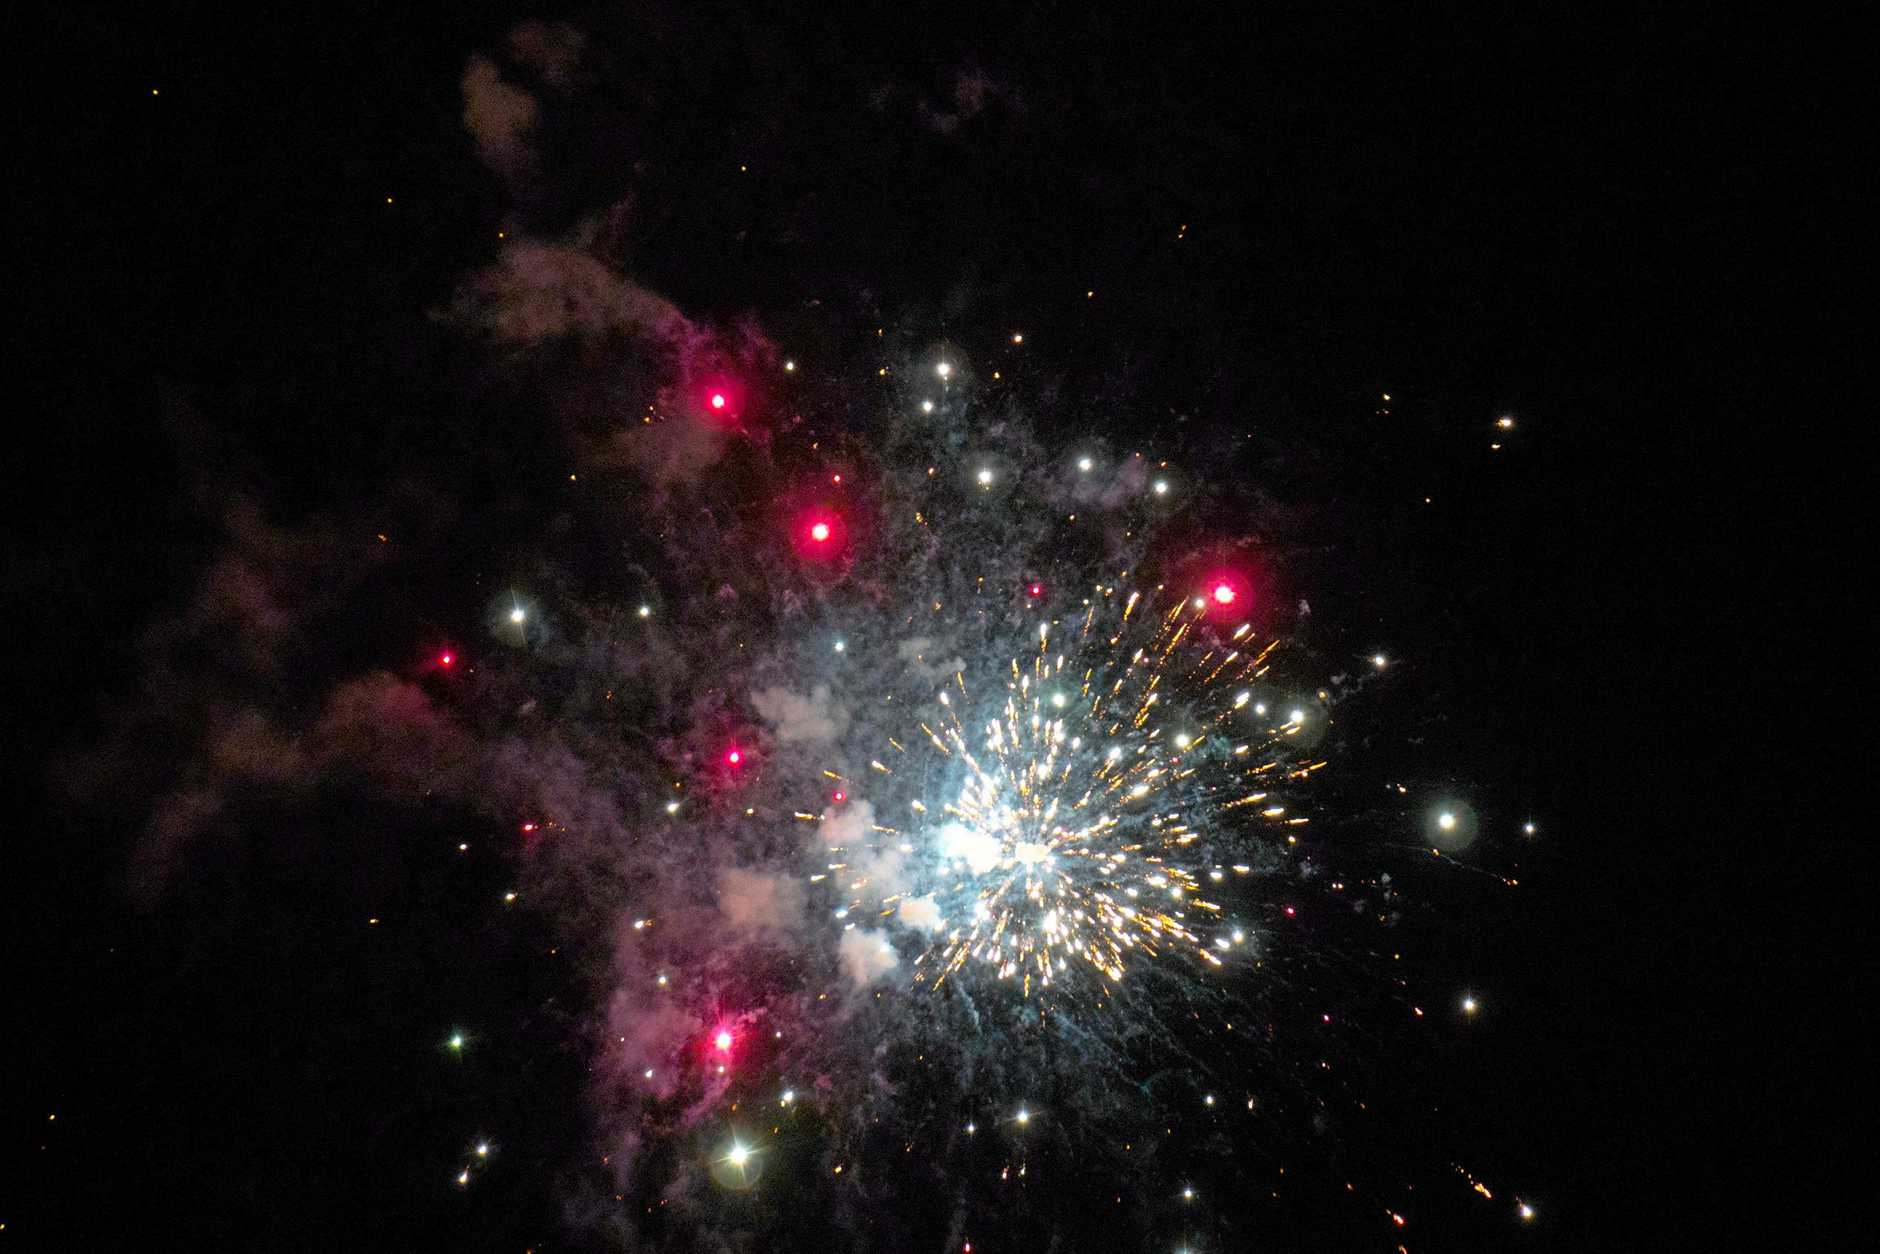 Generic New Years fireworks image.